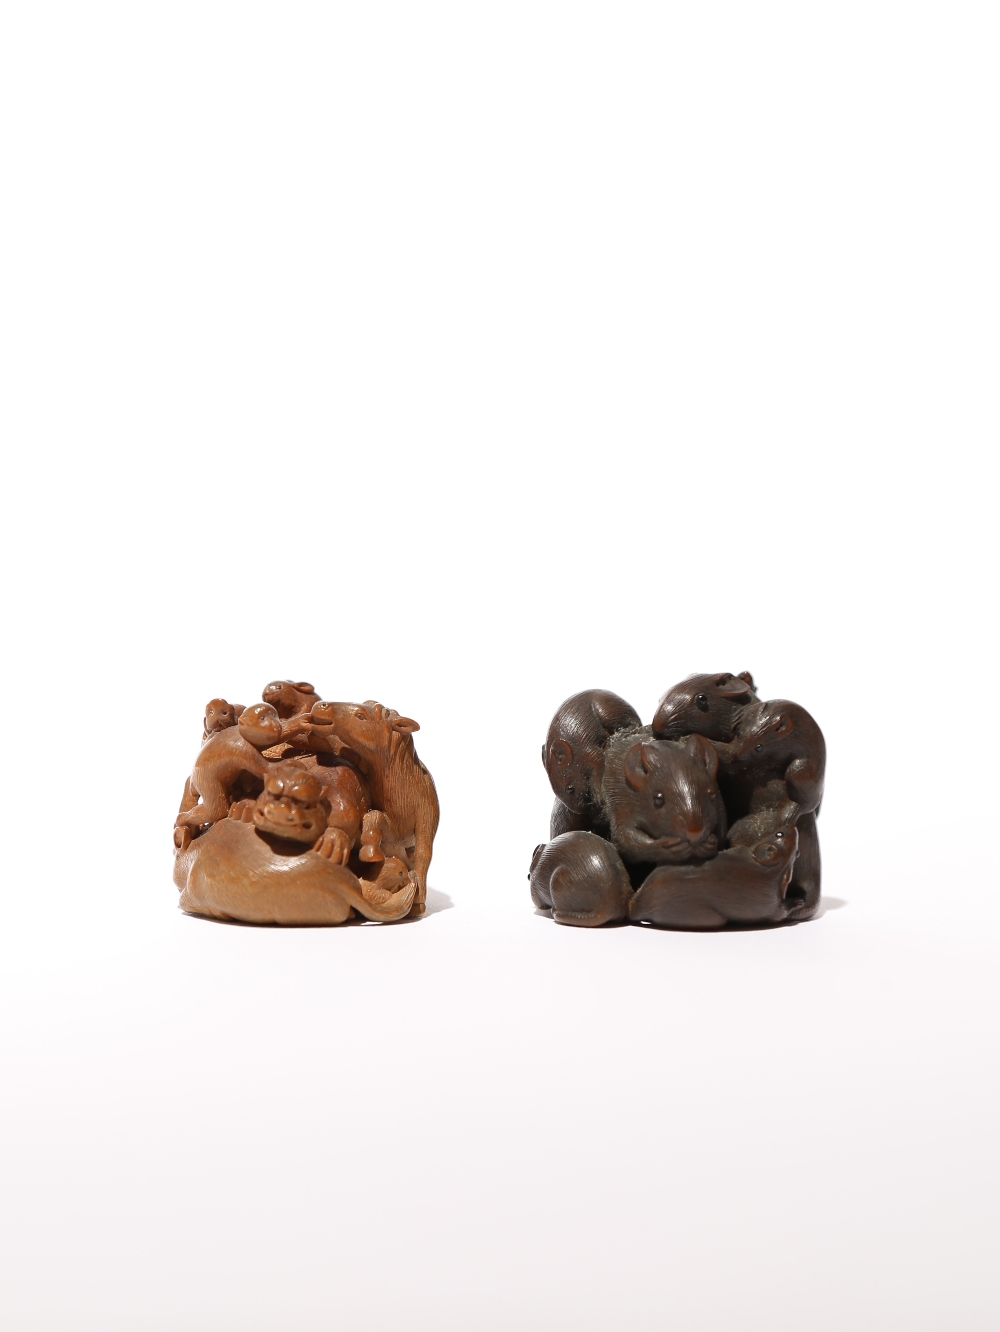 TWO JAPANESE WOOD NETSUKE OF ANIMALS MEIJI PERIOD, 19TH CENTURY The first intricately carved as - Image 2 of 2